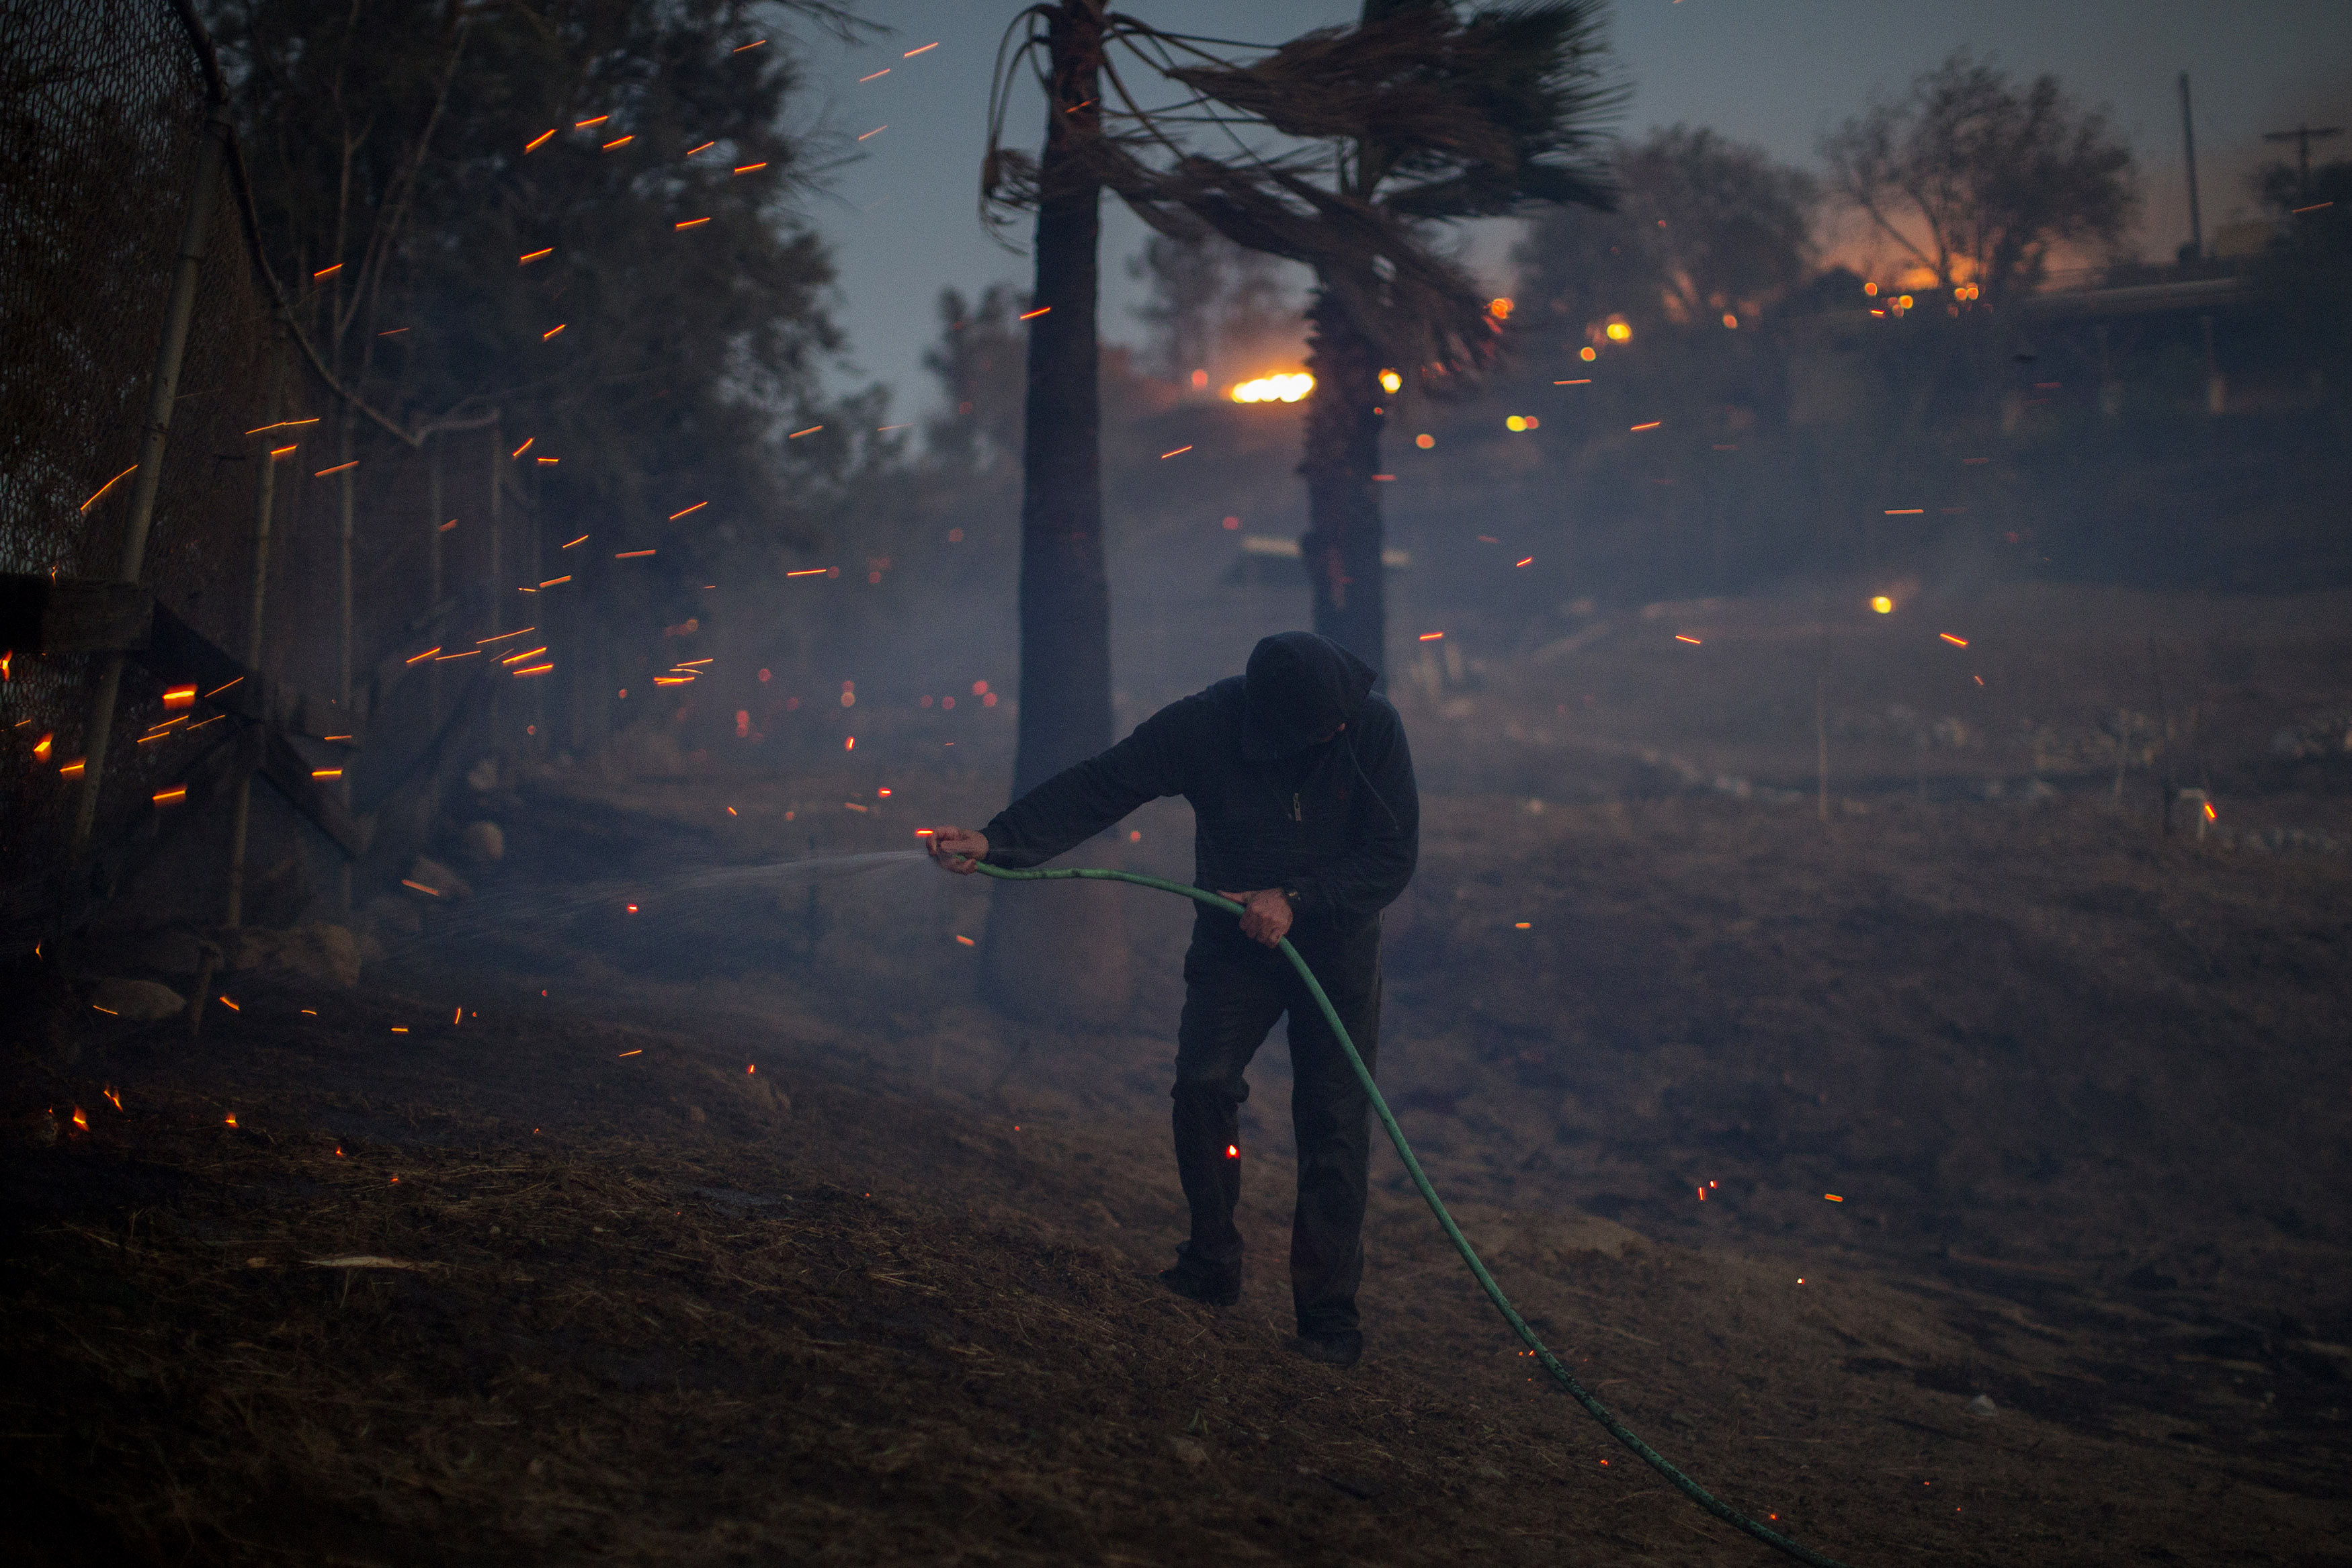 A strong wind blows embers around a resident hosing his burning property during the Creek Fire on December 5, 2017 in Sunland, California.